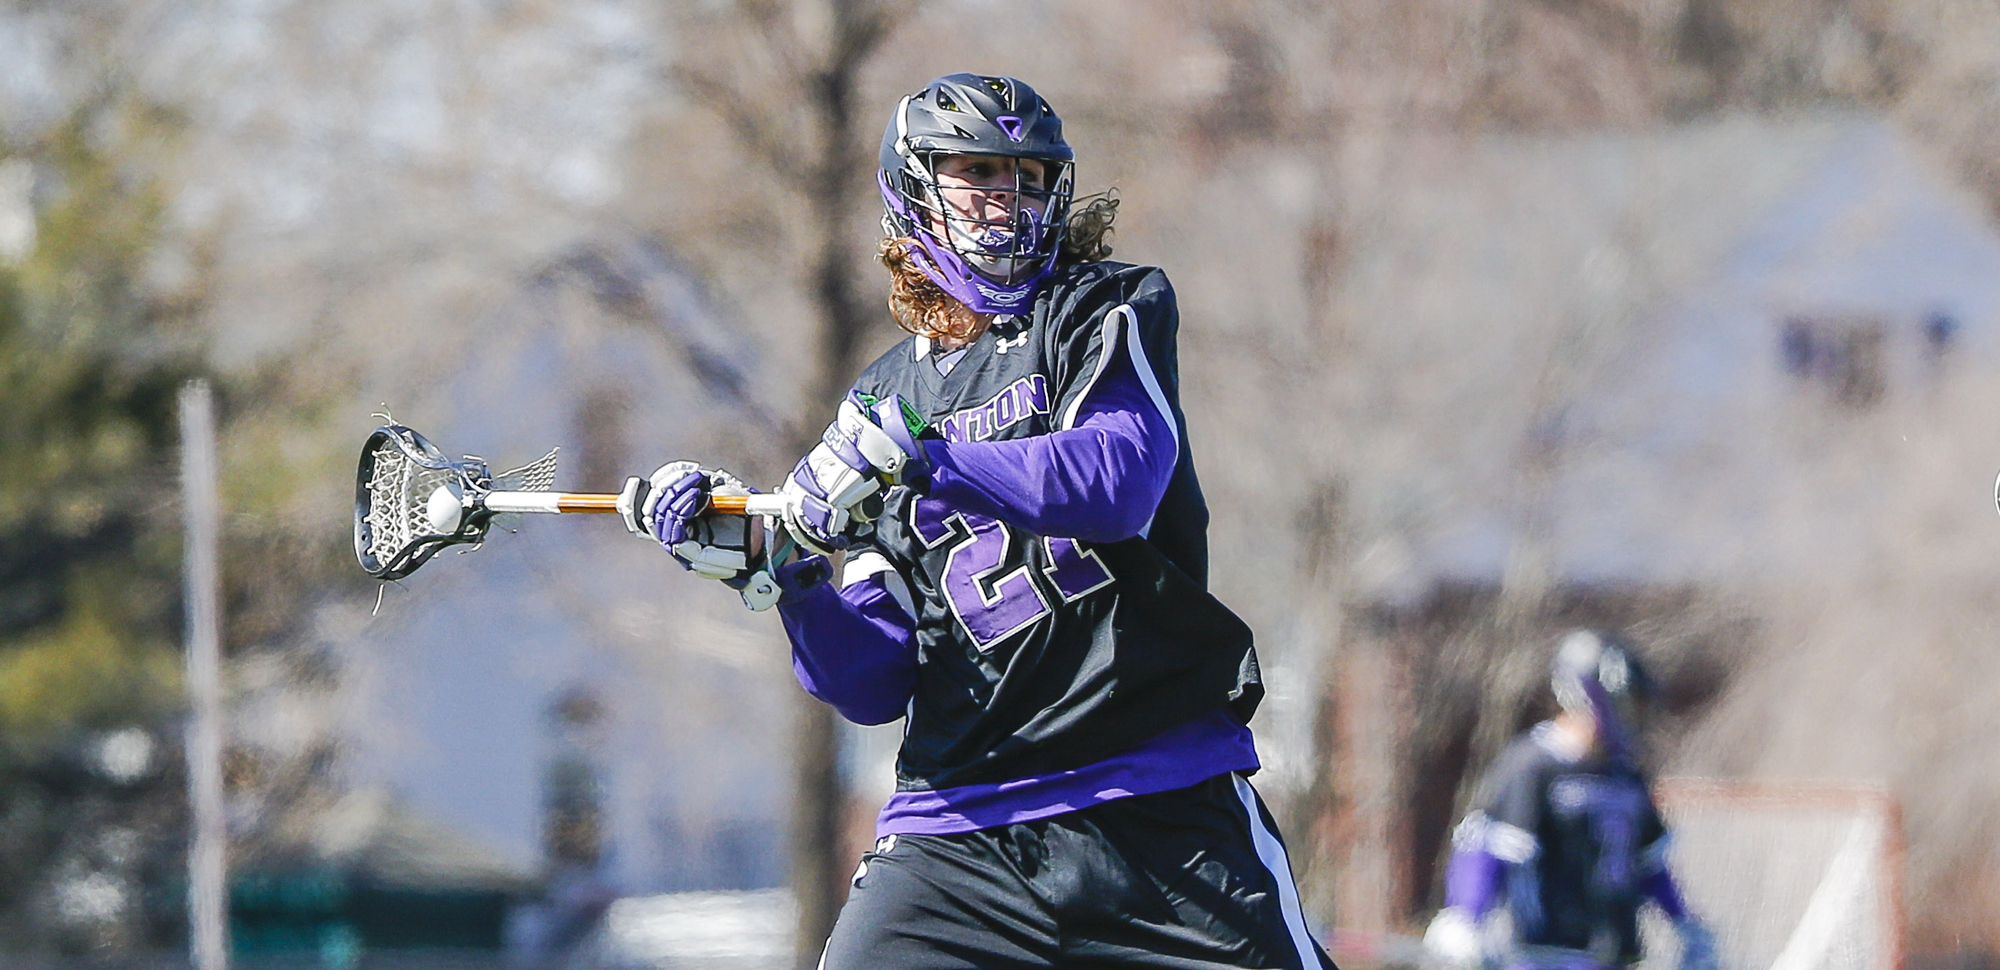 Junior midfielder Conor Carey had three goals and an assist in a season-opening 14-5 win over Muhlenberg on Saturday.